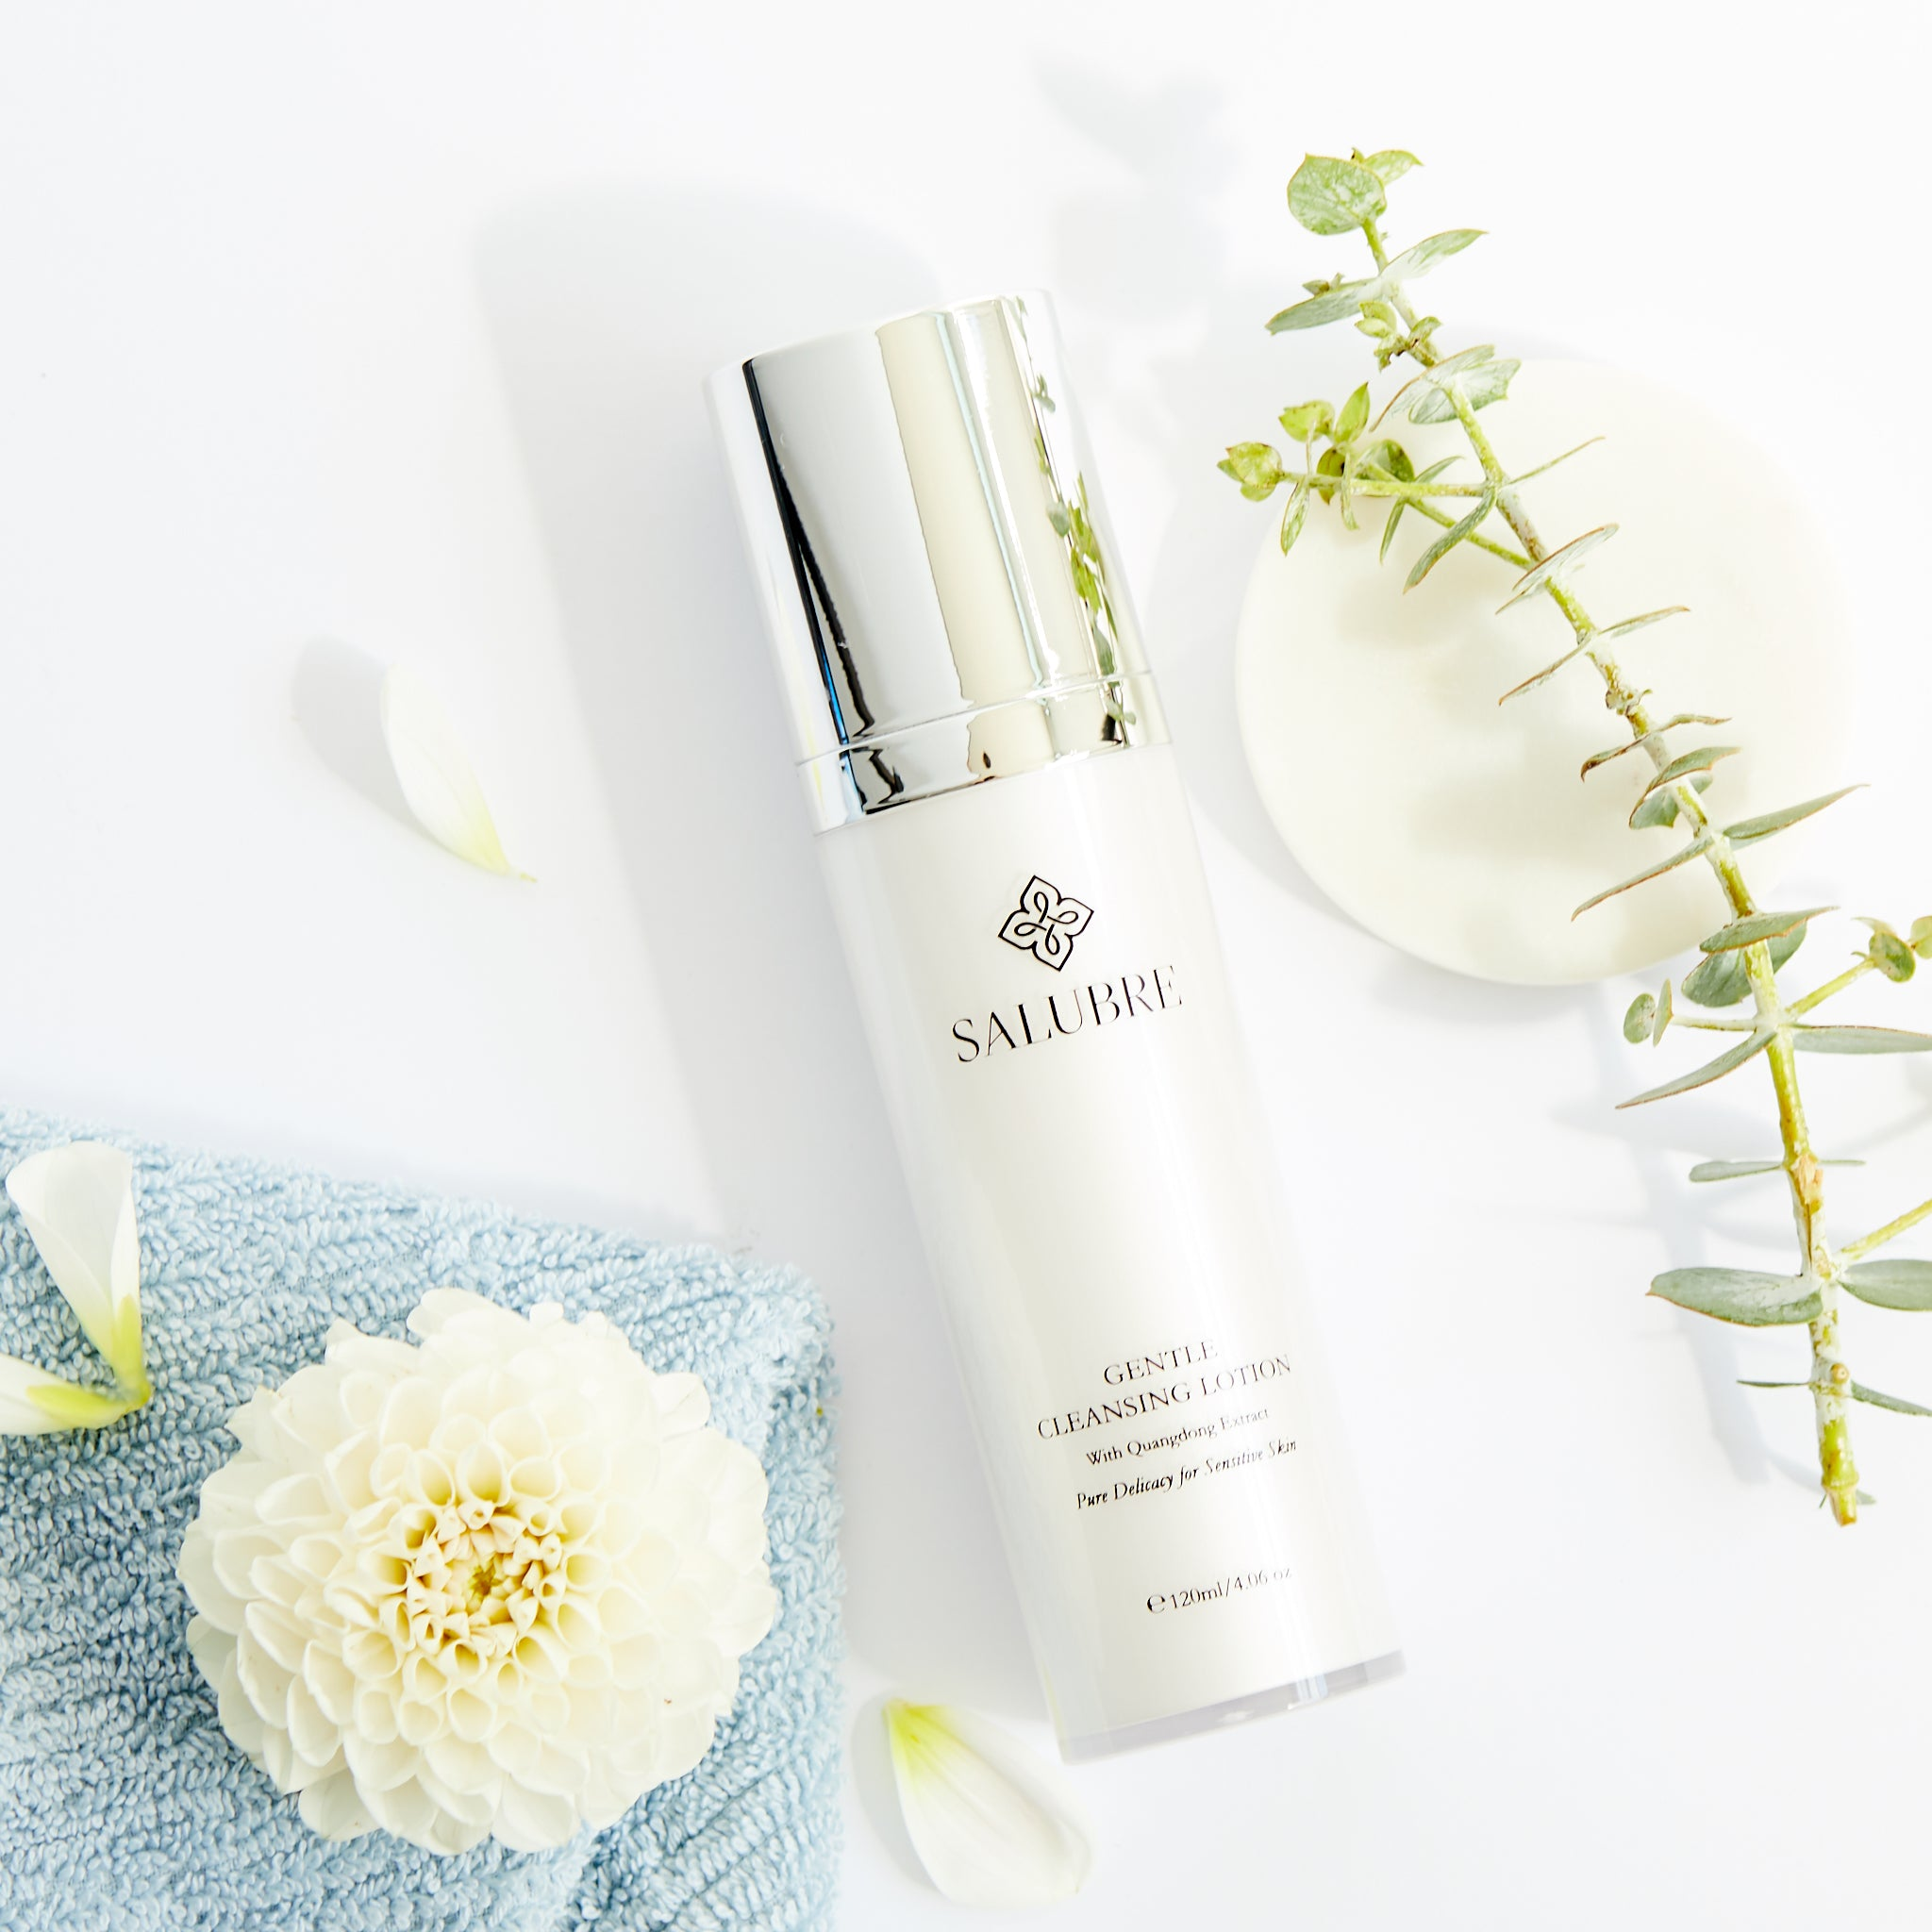 Gentle Cleansing Lotion with Quangdong Extract